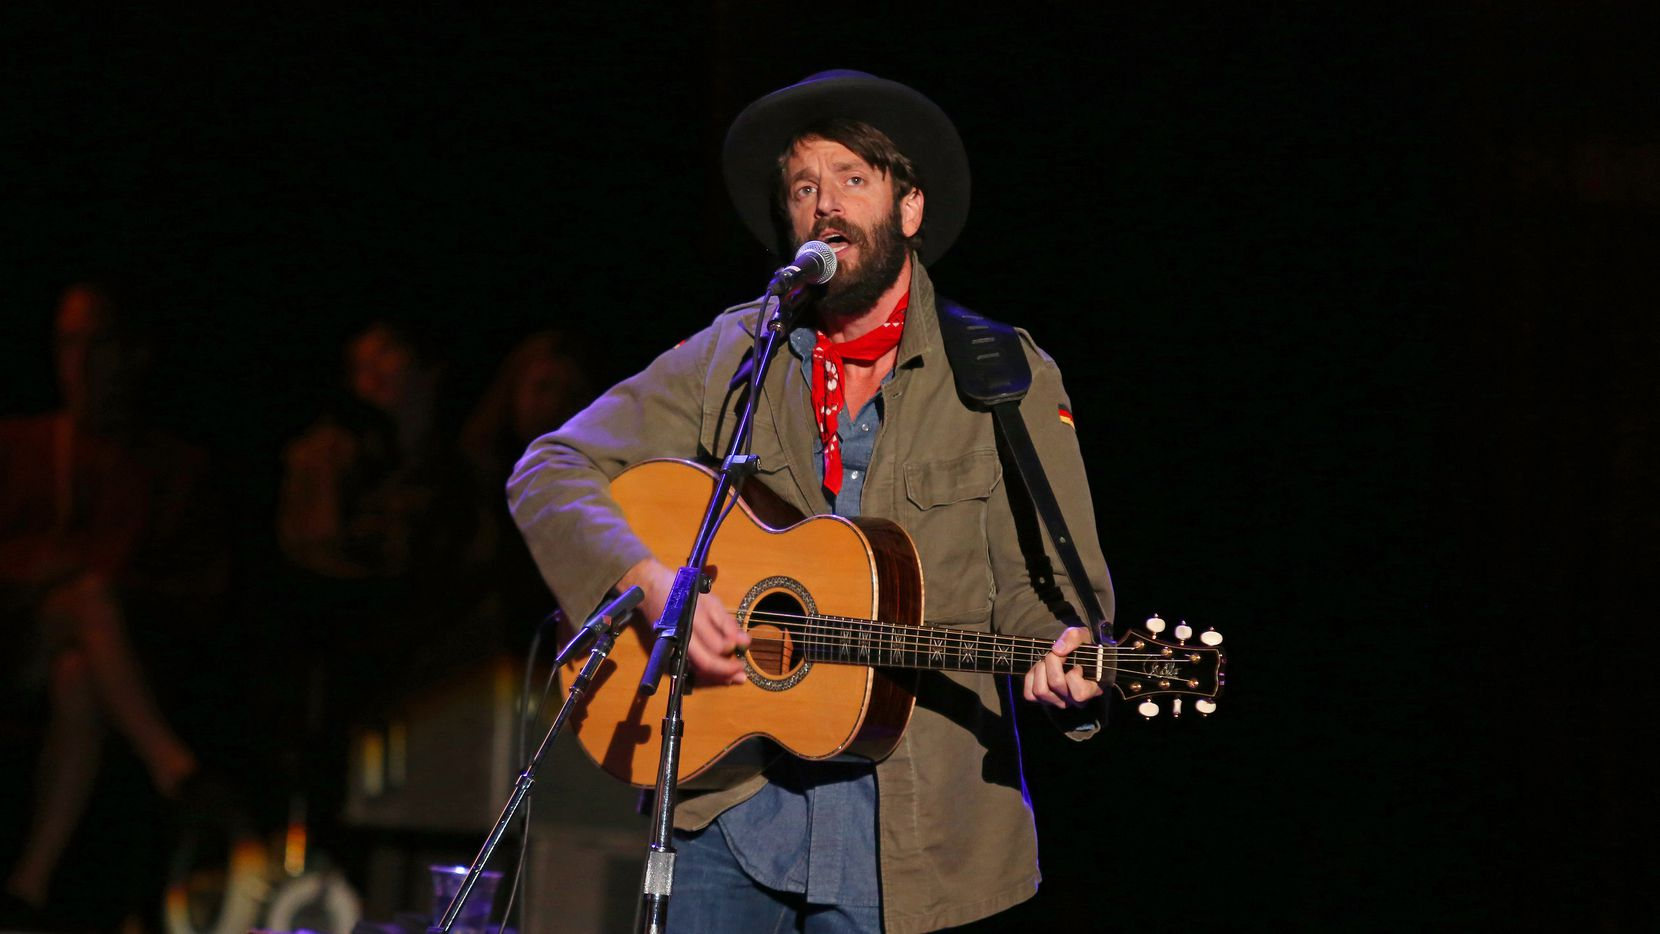 This Oct. 20, 2012 photo shows Ray LaMontagne performing at the Bridge School Benefit Concert at the Shoreline Amphitheatre in Mountain View, Calif.